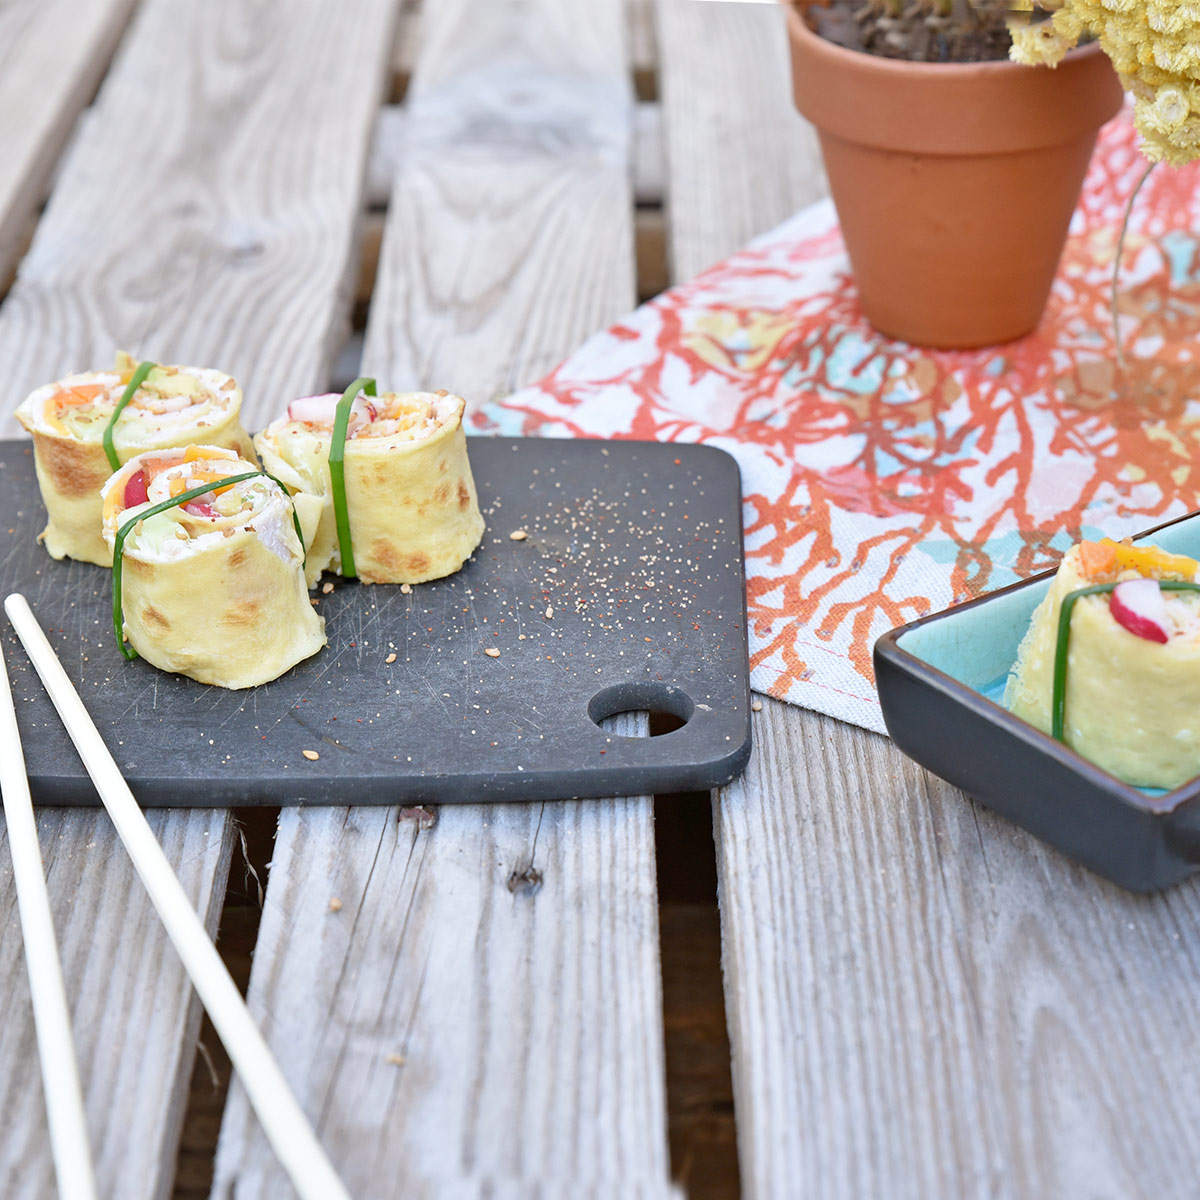 An original way to eat crepes: discover our Maki salted crepe recipe!